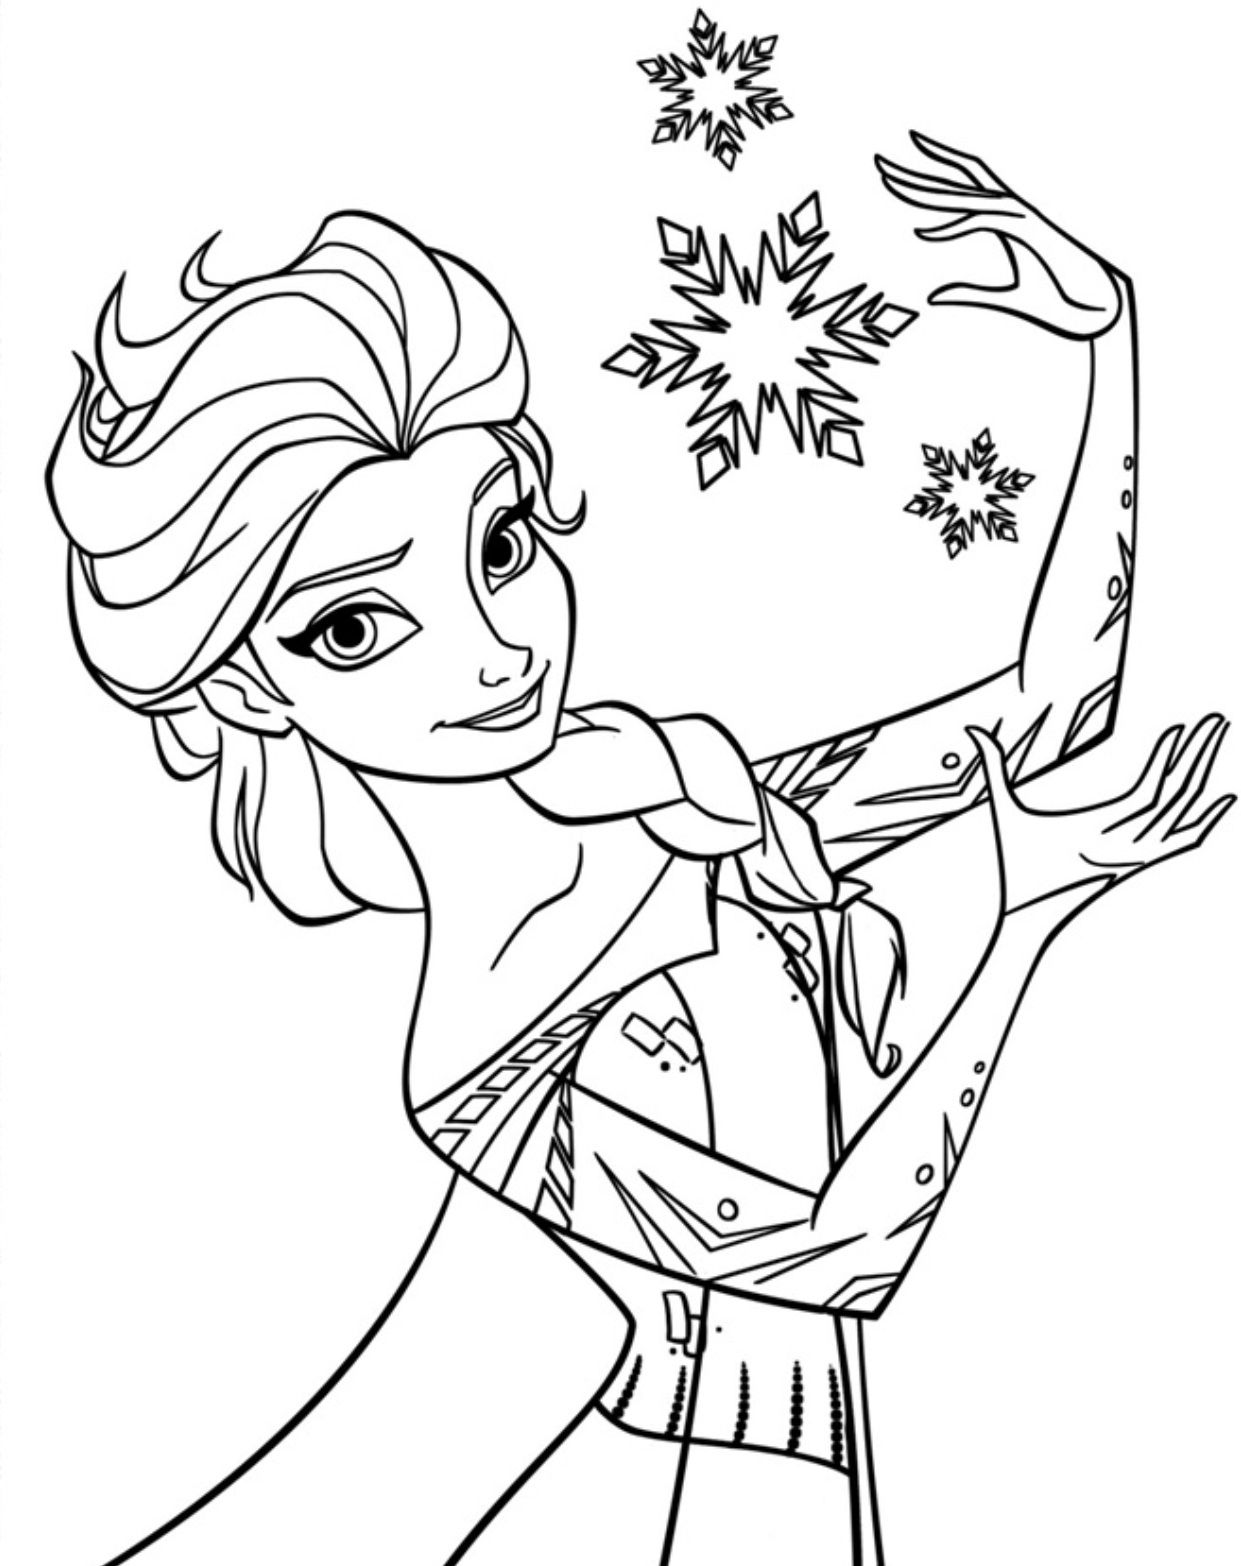 Coloring pages frozen - Frozen Callering Pages Download And Print Printable Frozen Coloring Page